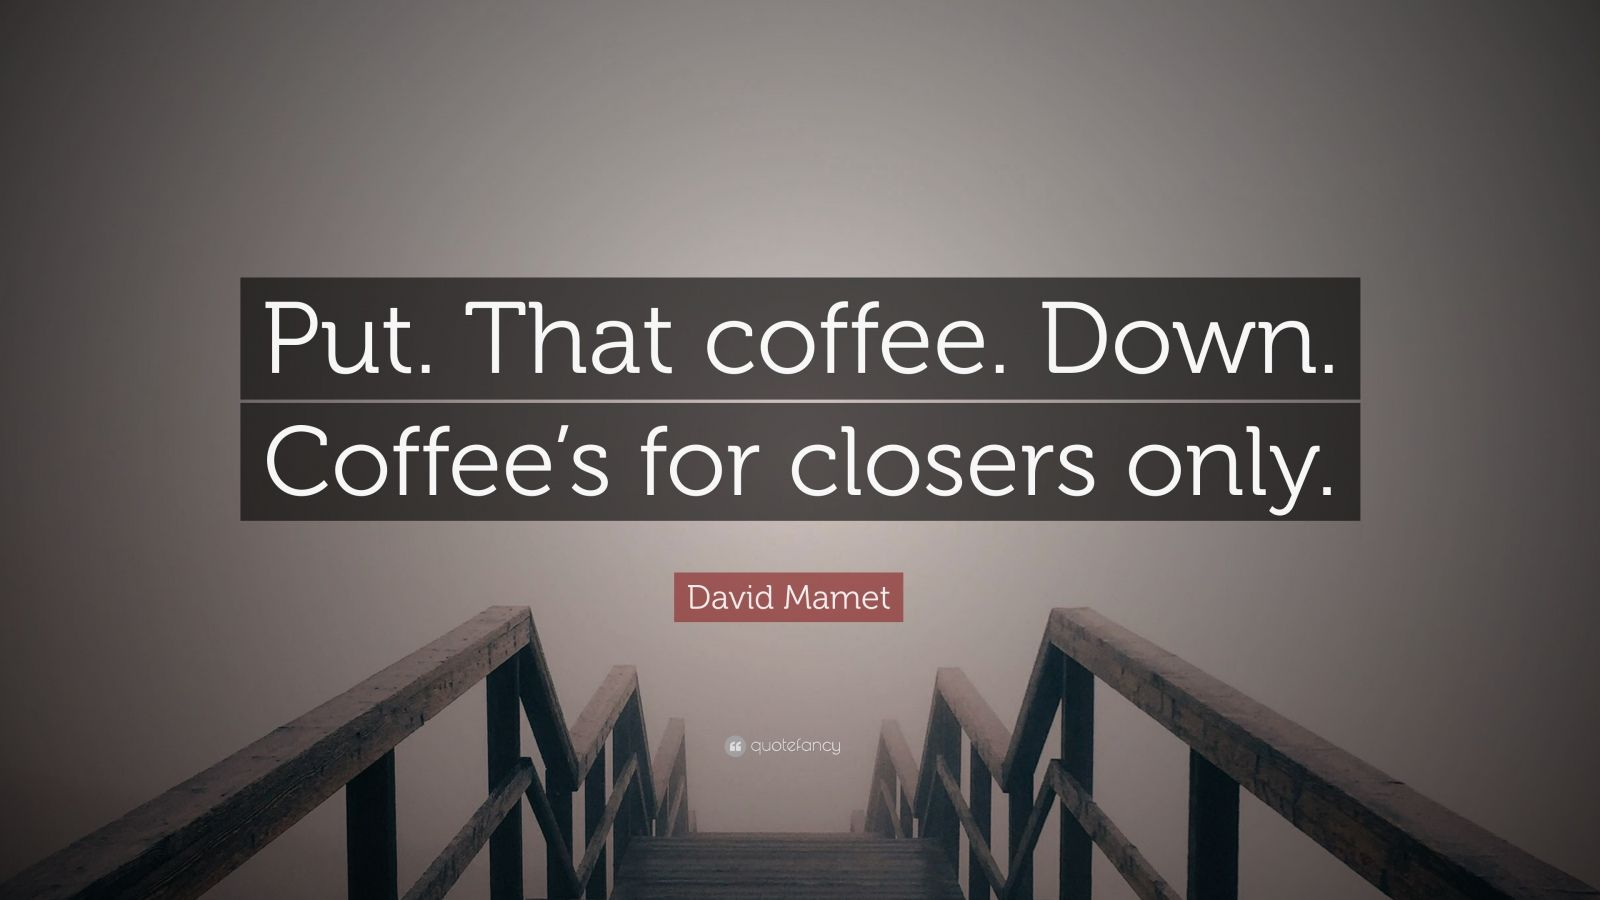 """David Mamet Quote: """"Put. That coffee. Down. Coffee's for closers only."""""""